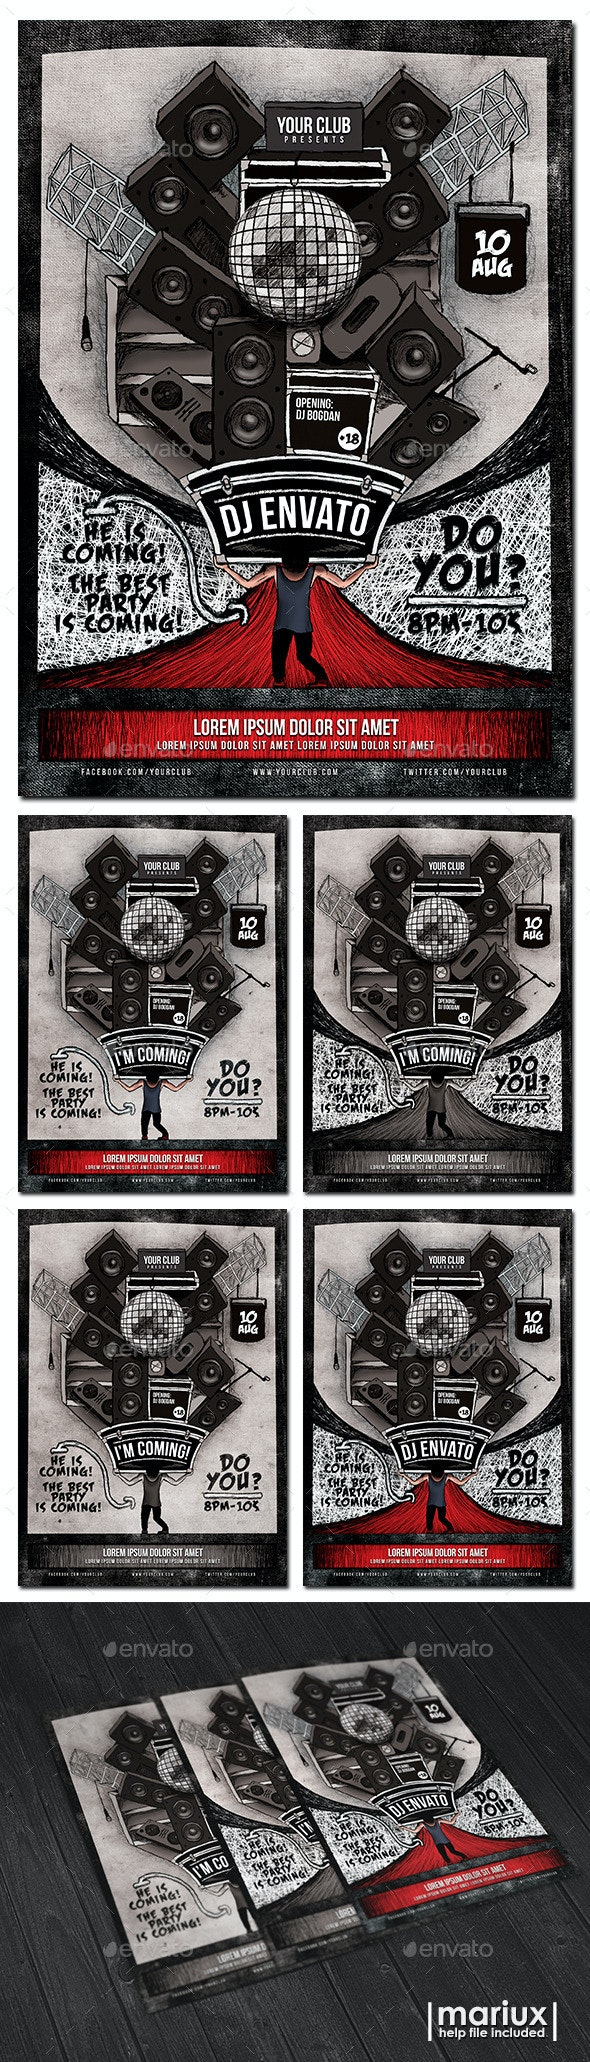 Guest DJ Flyer Poster - Clubs & Parties Events